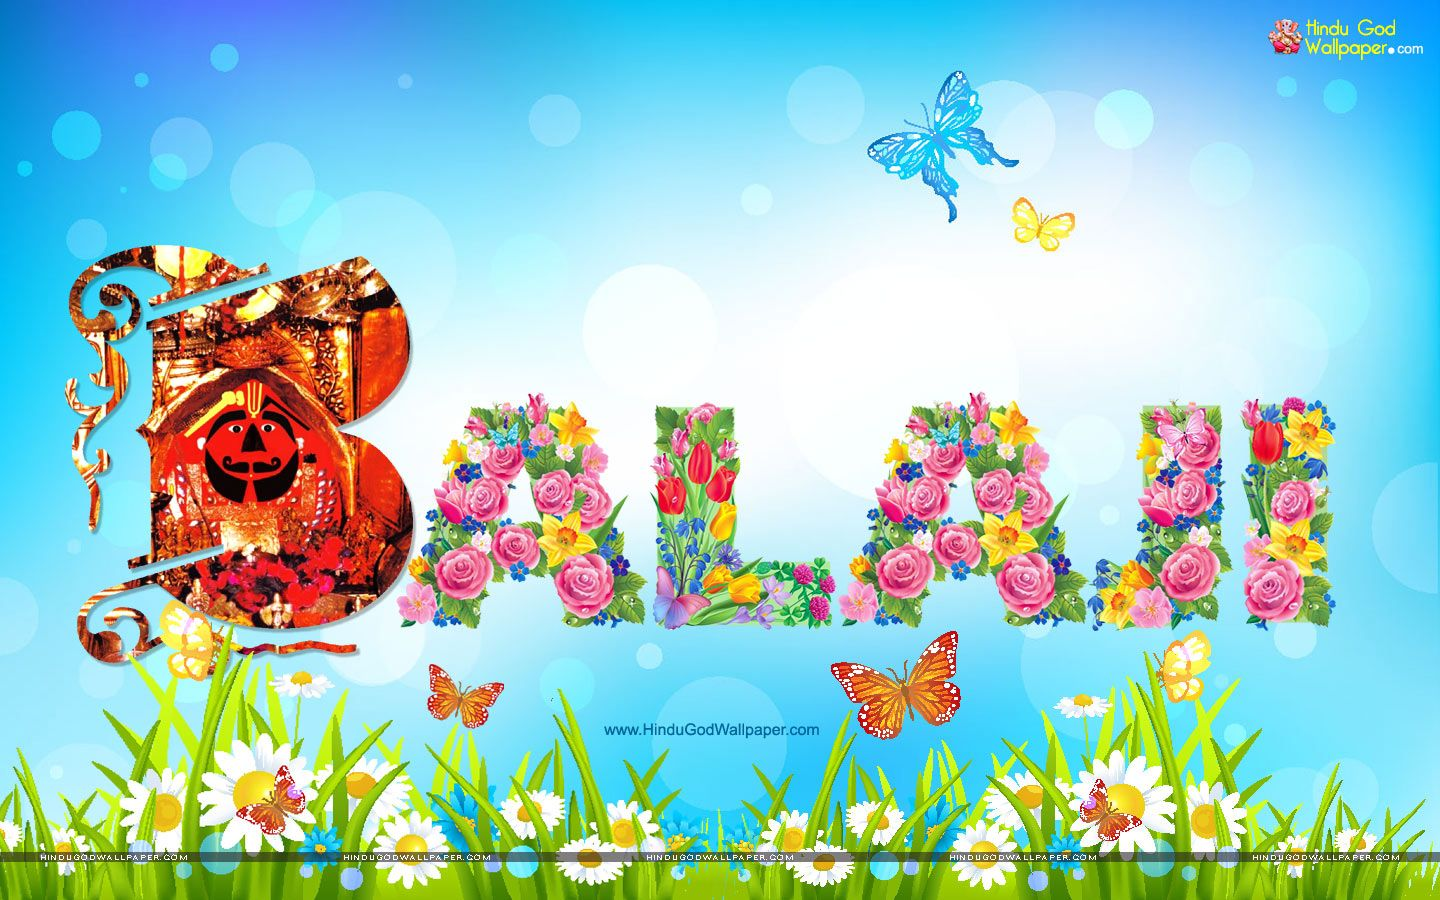 Download Wallpaper Lord Name - 9452e82bc2a332a6aacb090d9a026239  HD_1001725.jpg